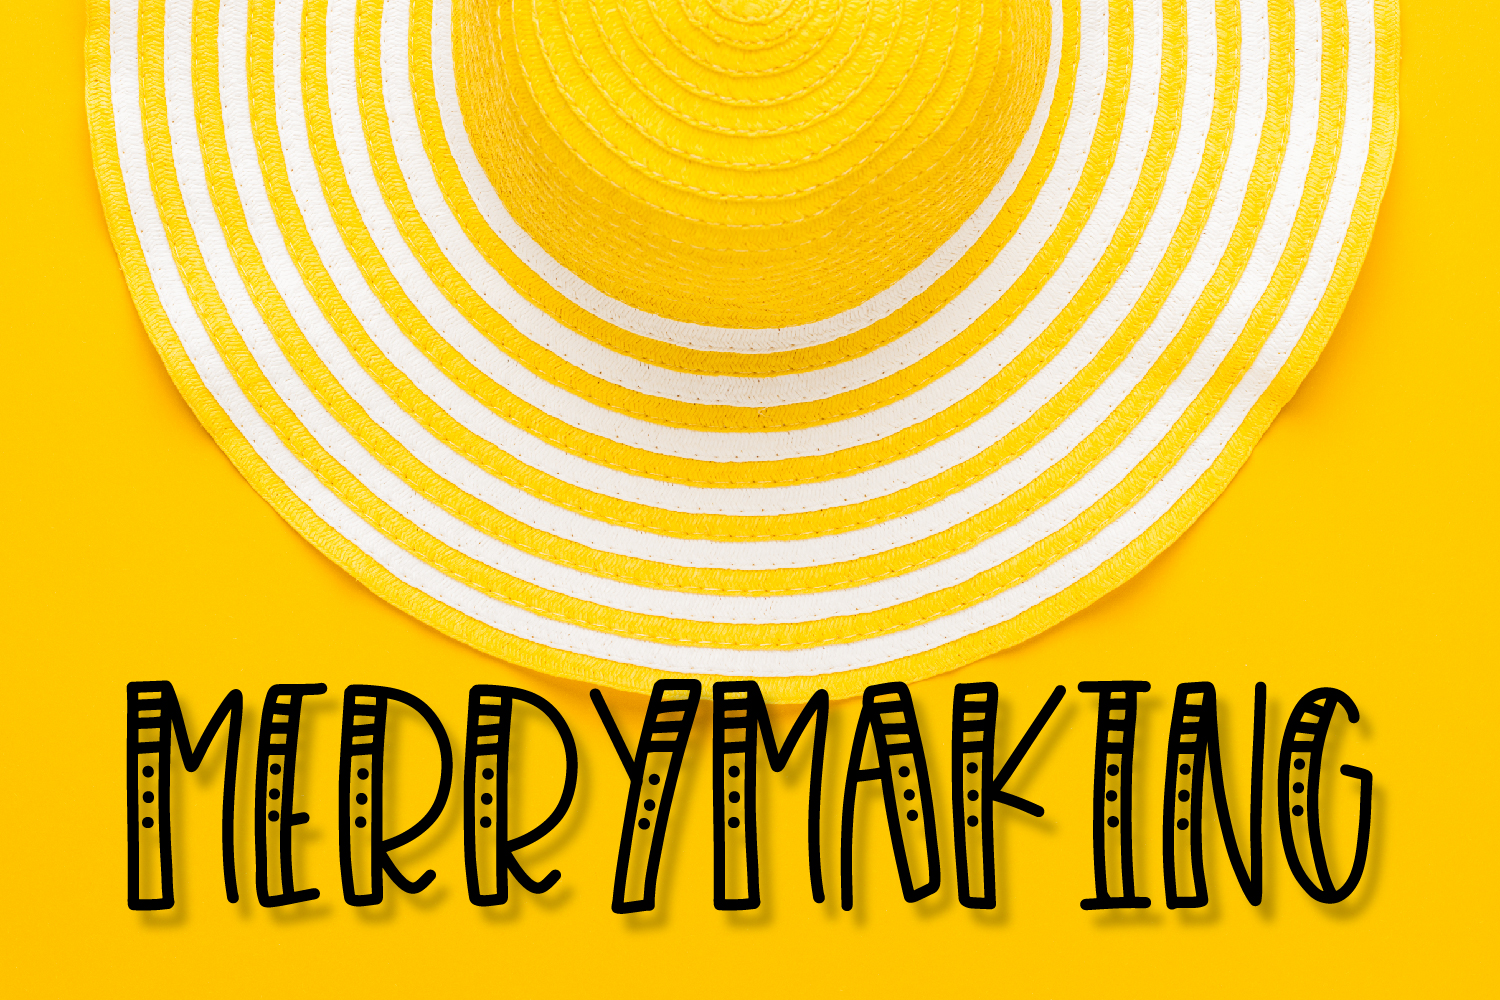 Merrymaking - 4 Styles Font Duo - Handlettered example image 1